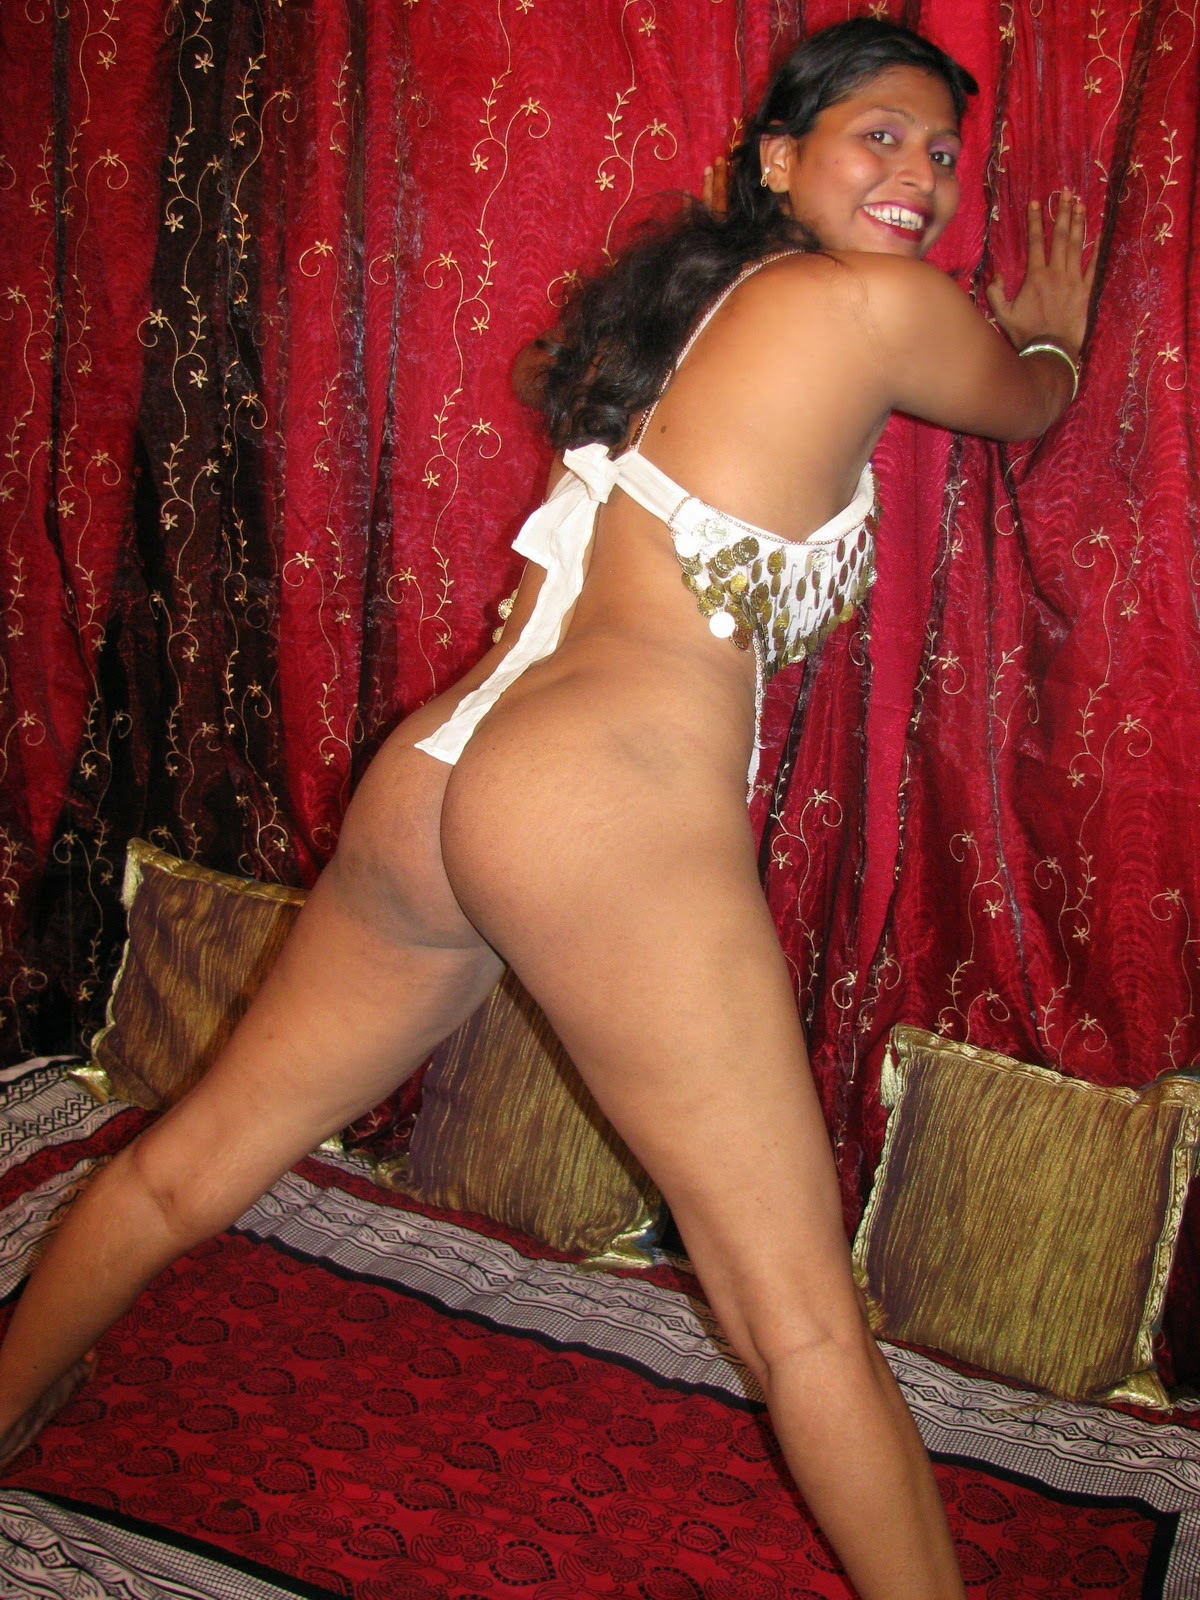 Indian Red Porn Complete nude indian call girls archives - desi porn girl's photos$images